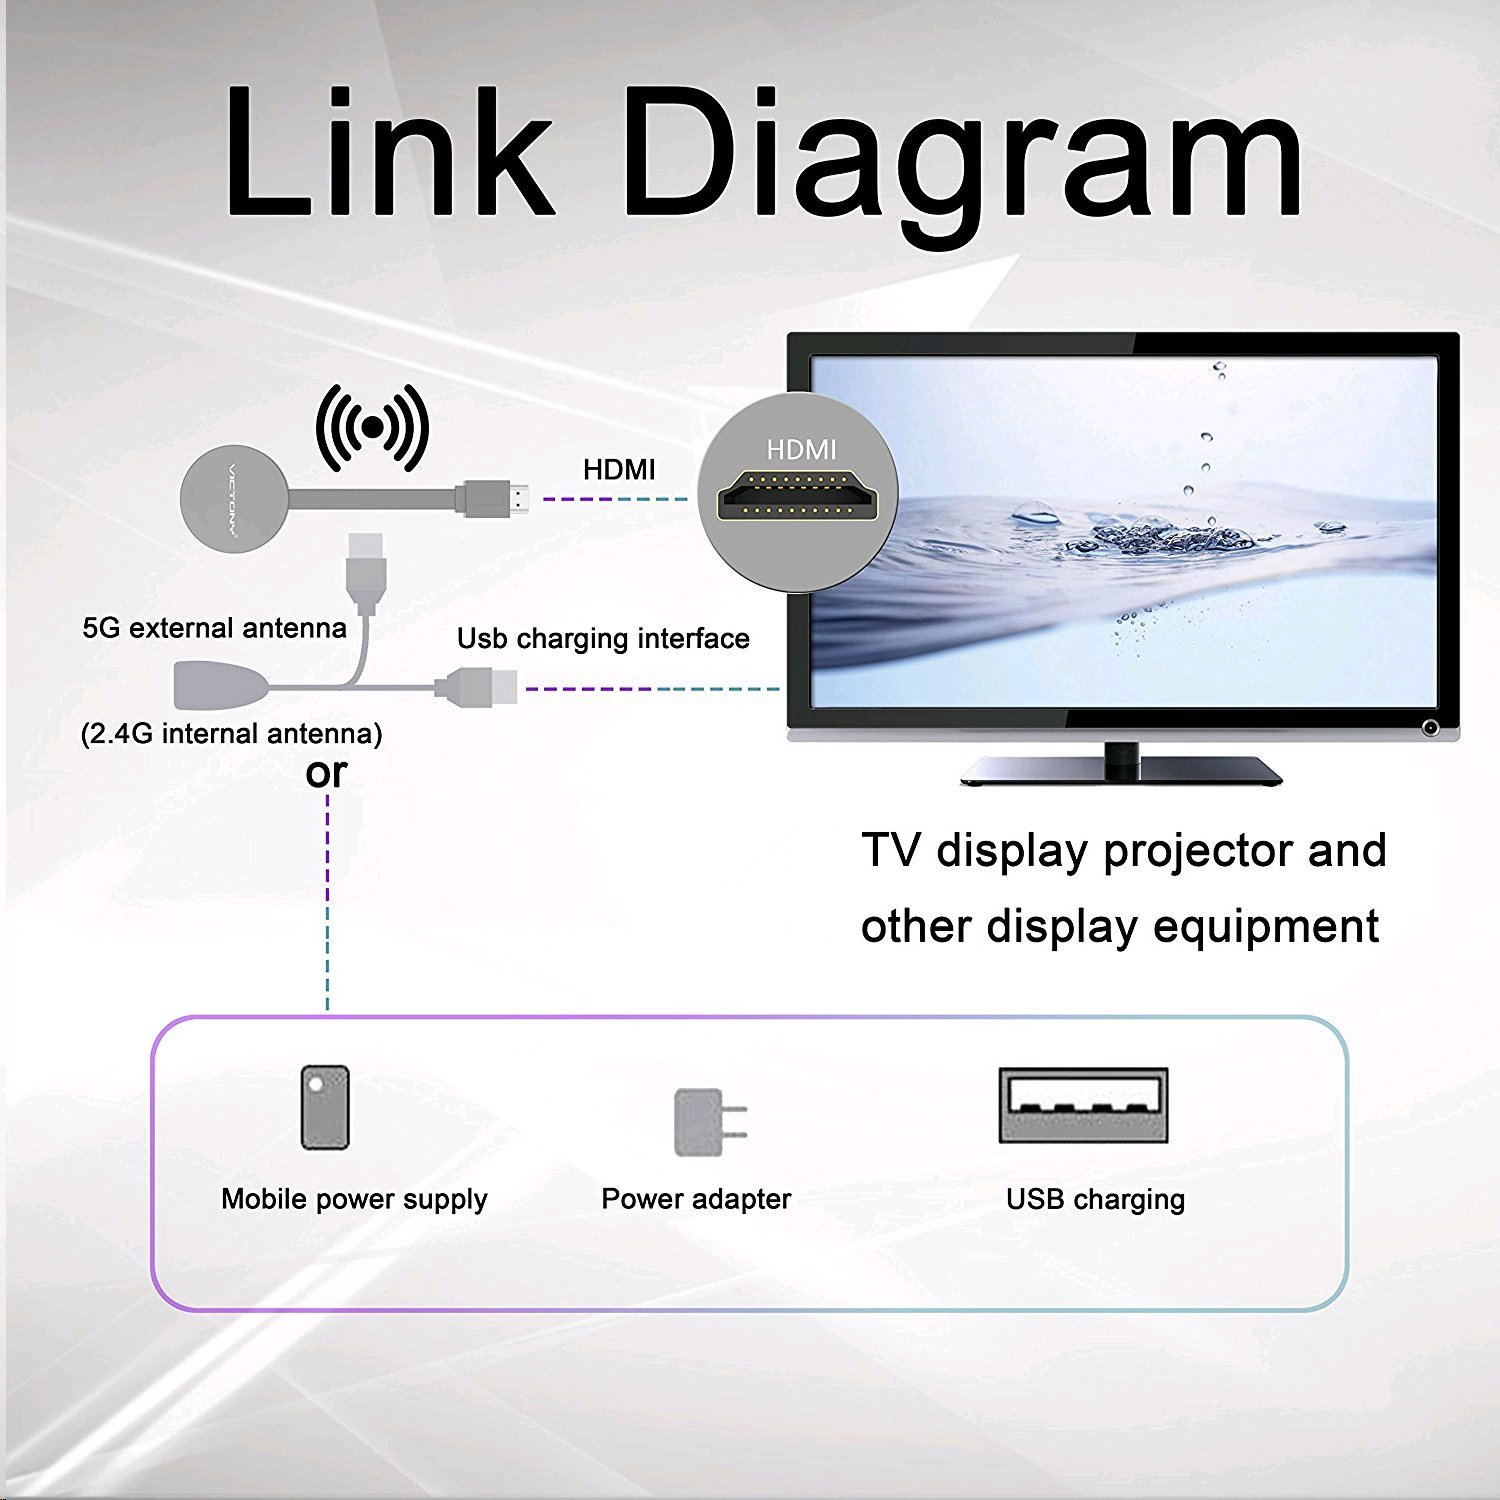 amazon com victony 1080p wireless wifi mini display dongle receiver amazon com victony 1080p wireless wifi mini display dongle receiver sharing hd video support airplay dlna miracast hdmi tv projector stick from projectors